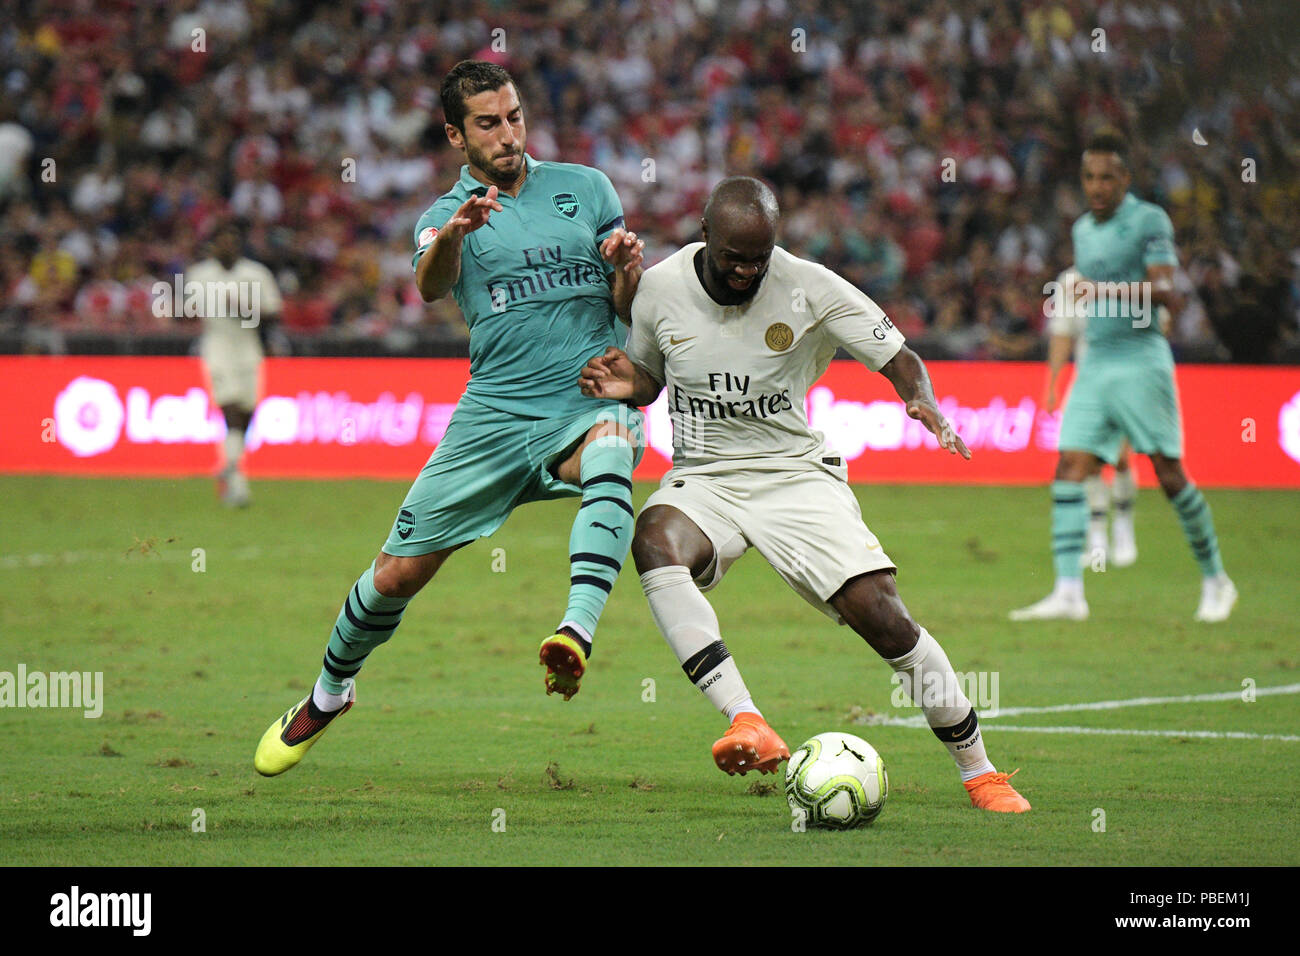 Singapore. 28th July, 2018. Arsenal's Henrikh Mkhitaryan (L) vies with Paris Saint-Germain's Lassana Diarra during the International Champions Cup soccer match held in Singapore on July 28, 2018. Credit: Then Chih Wey/Xinhua/Alamy Live News - Stock Image